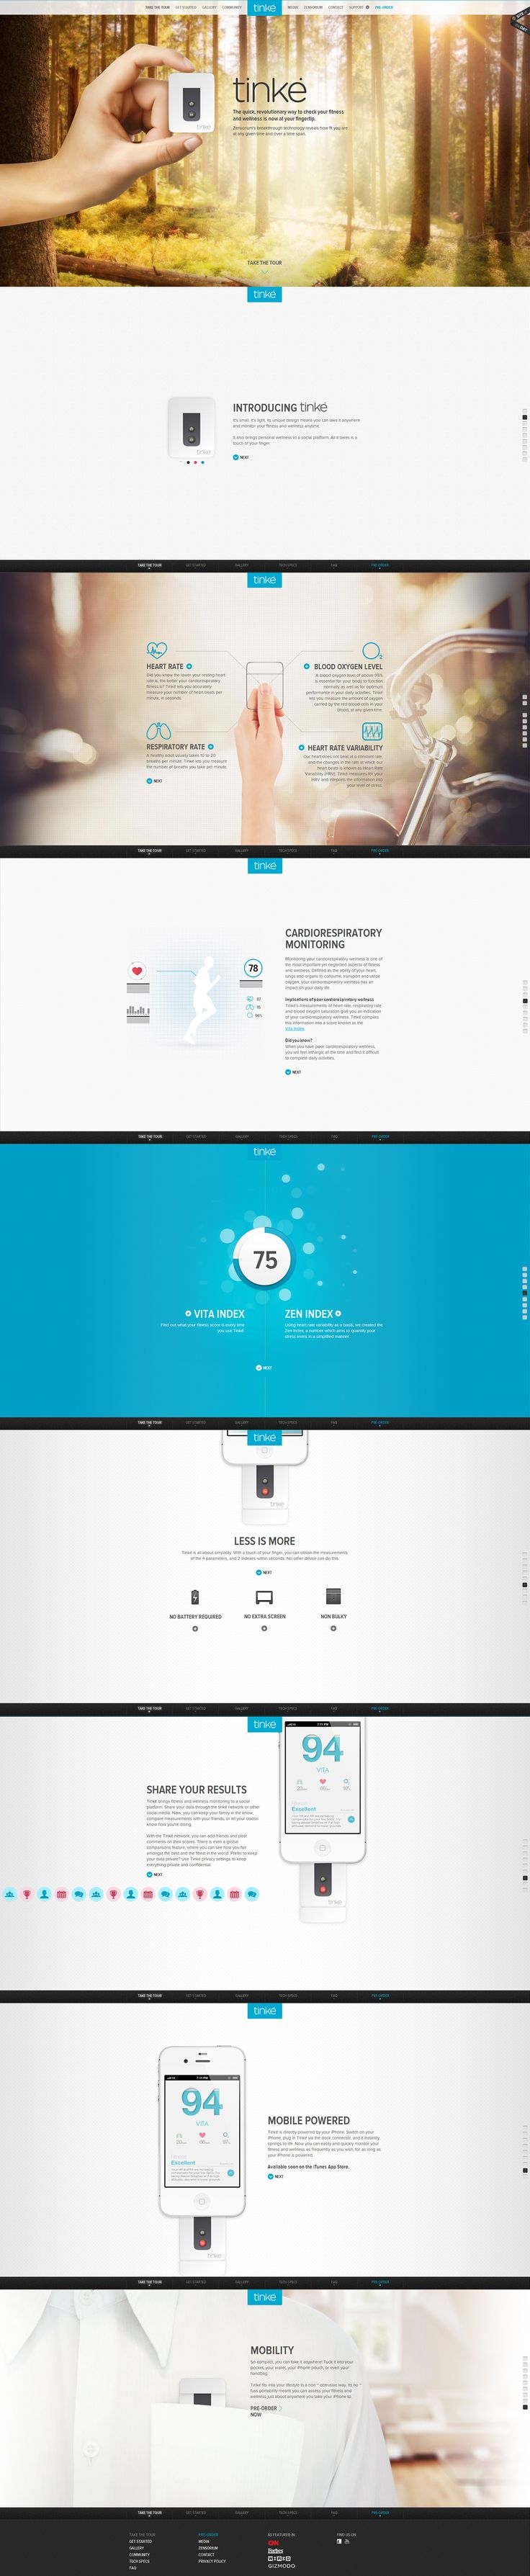 http://media-cache-ak1.pinimg.com/originals/39/71/e9/3971e9c9e9764658d3b5a20eaa57d272.jpg more on http://html5themes.org